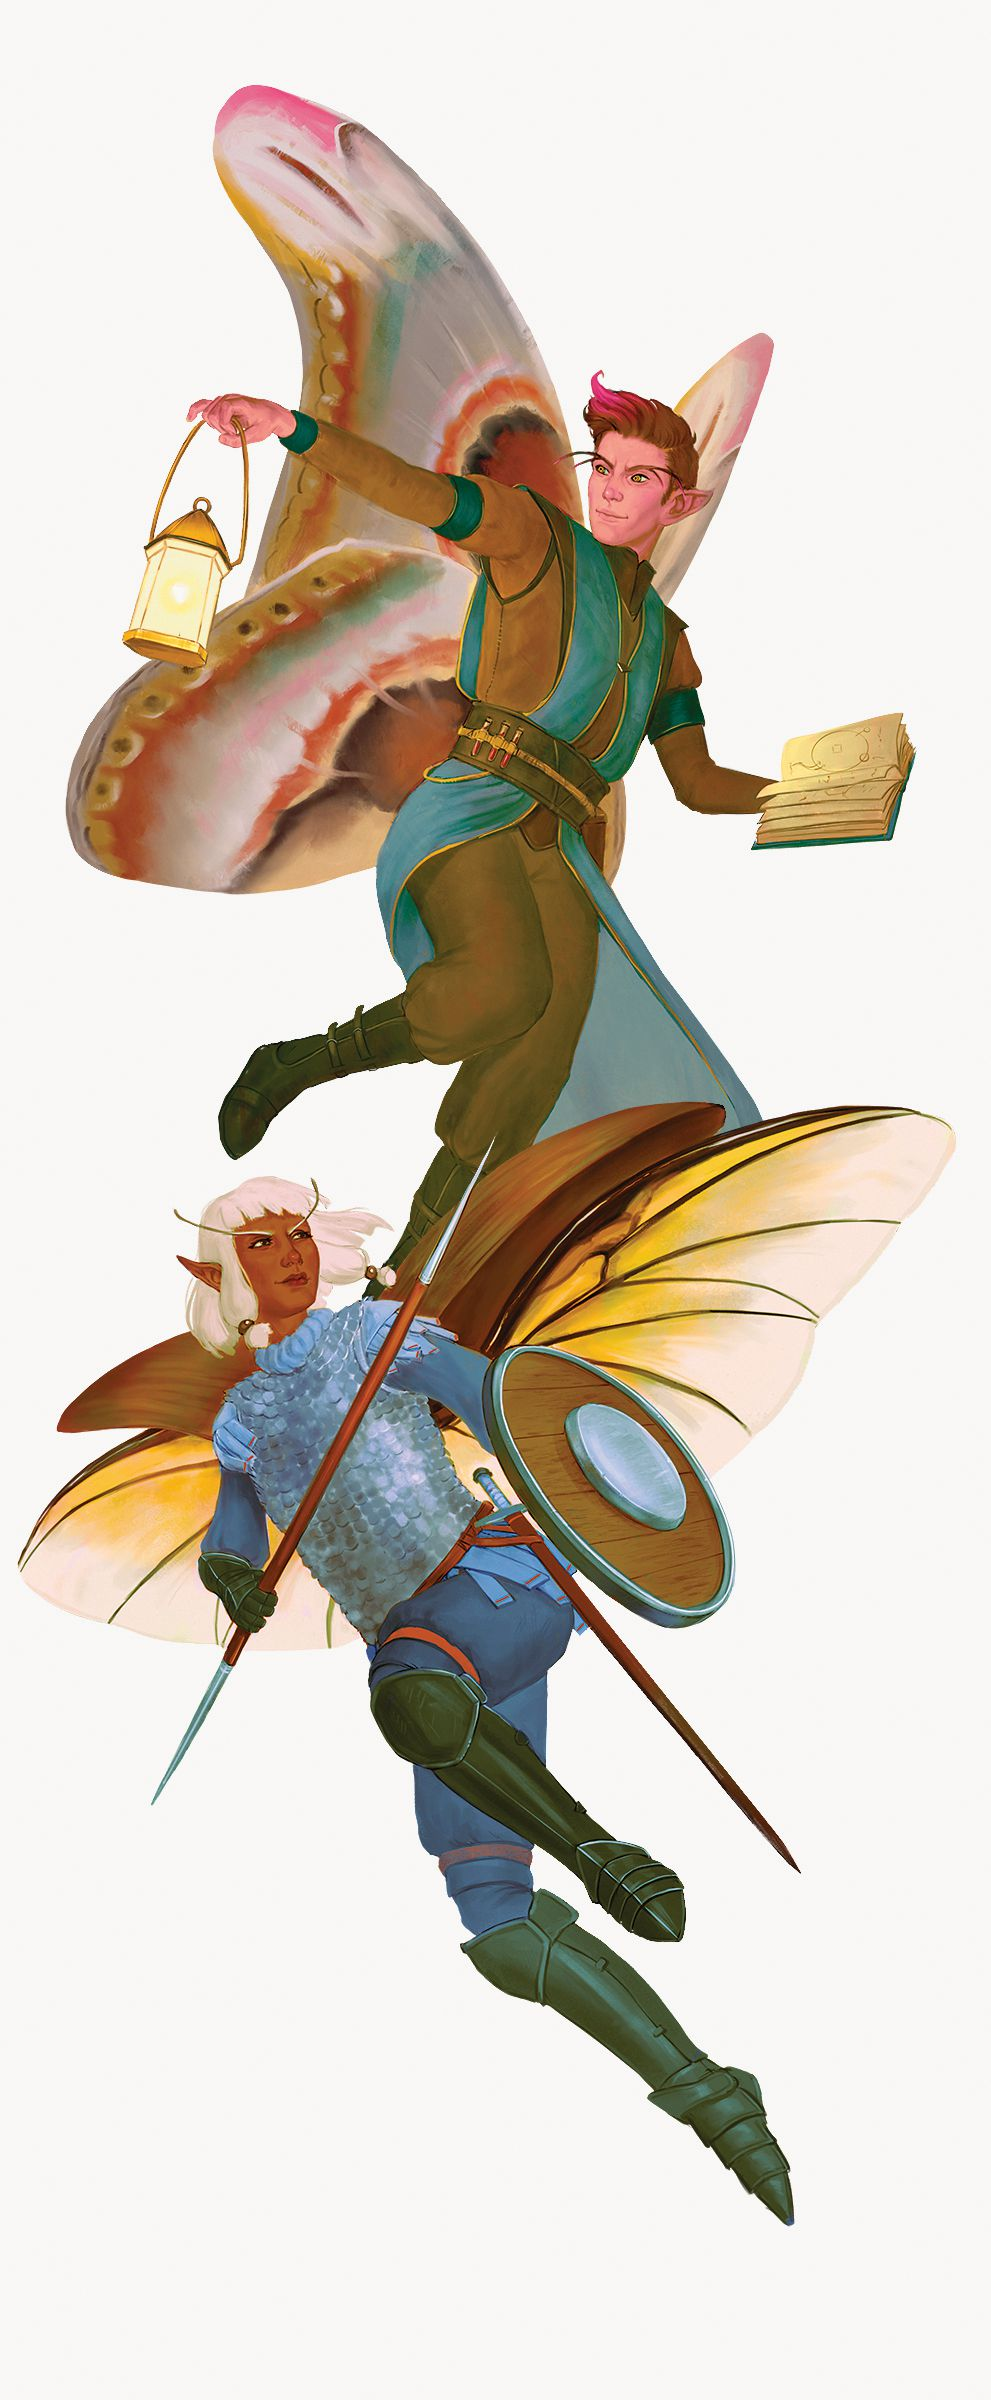 Fantasy illustration of two characters with wings, one carrying a lantern and book; the other a spear and shield